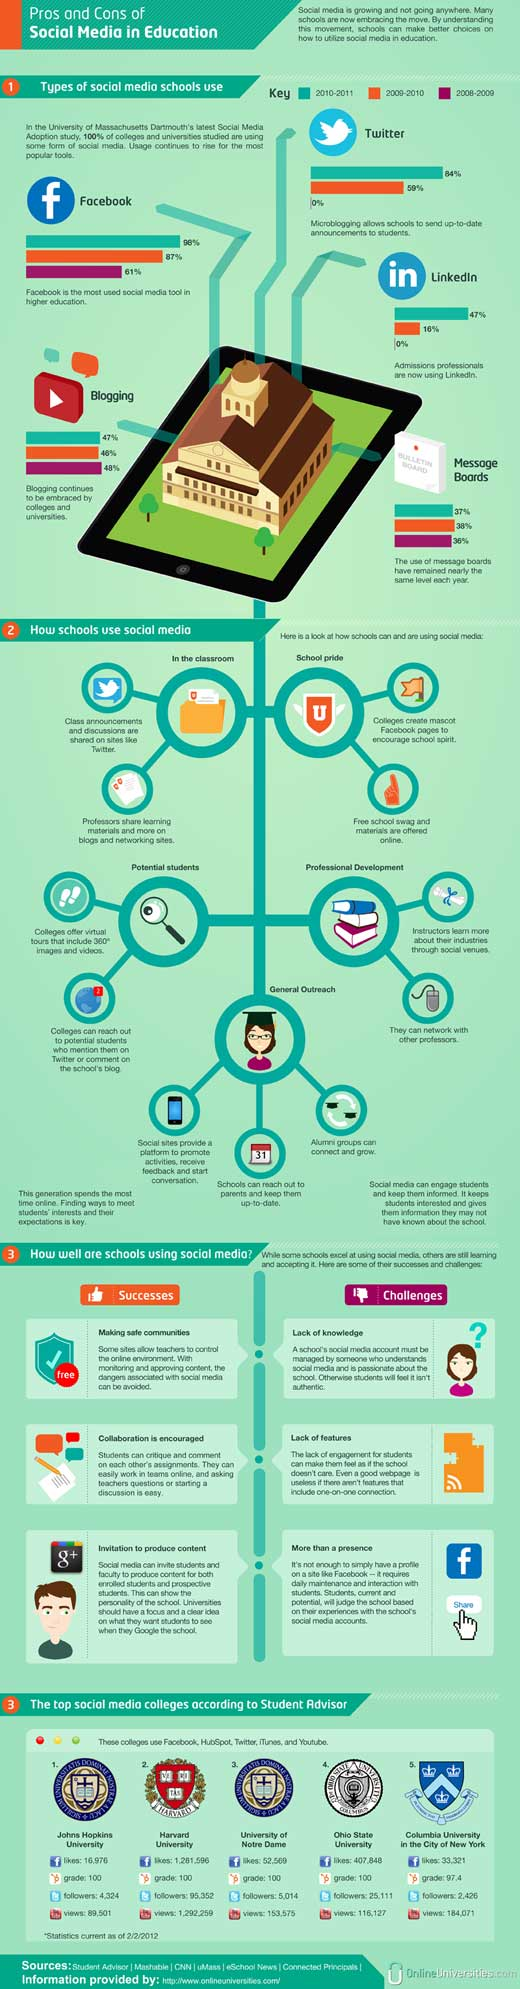 social media in education infographic